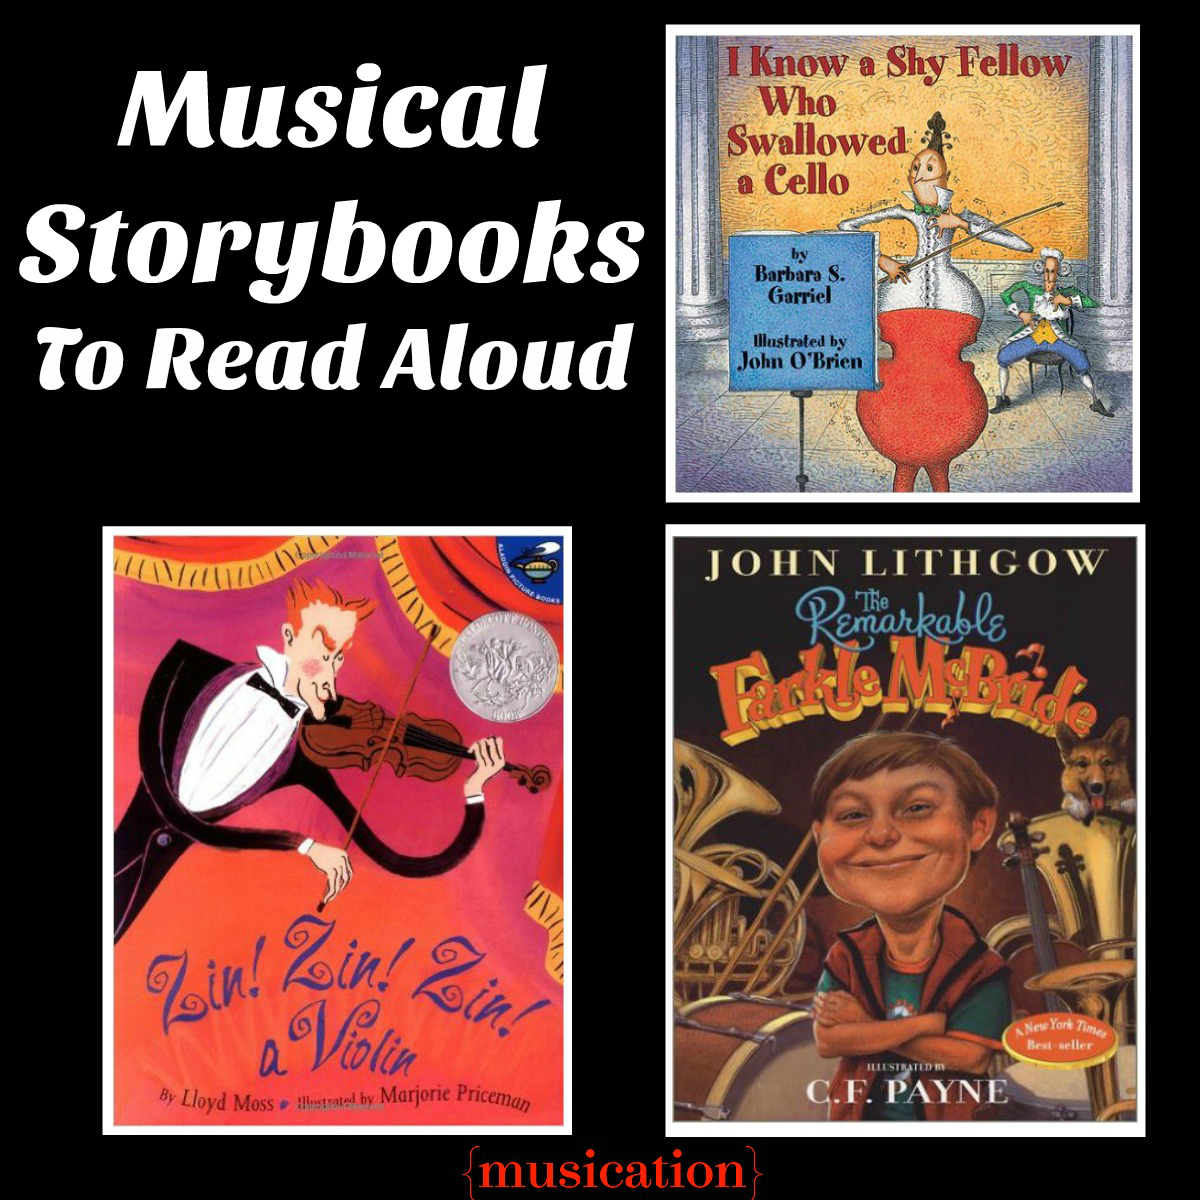 Musical Storybooks To Read Aloud